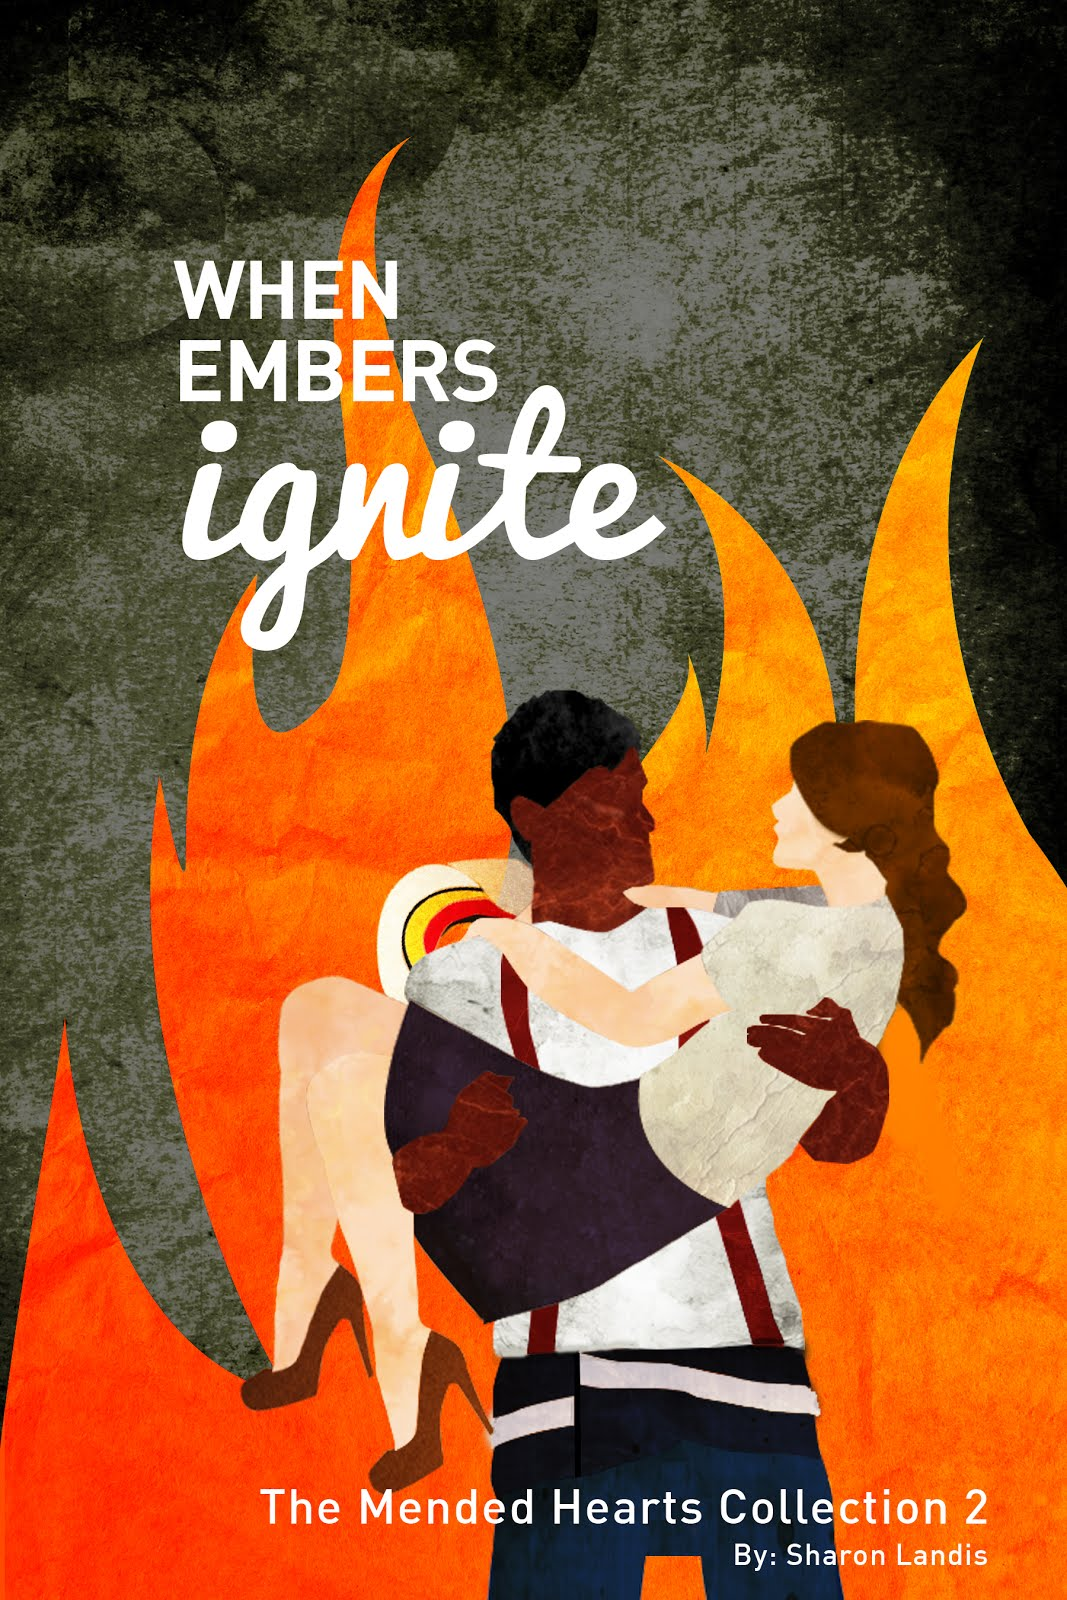 When Embers Ignite